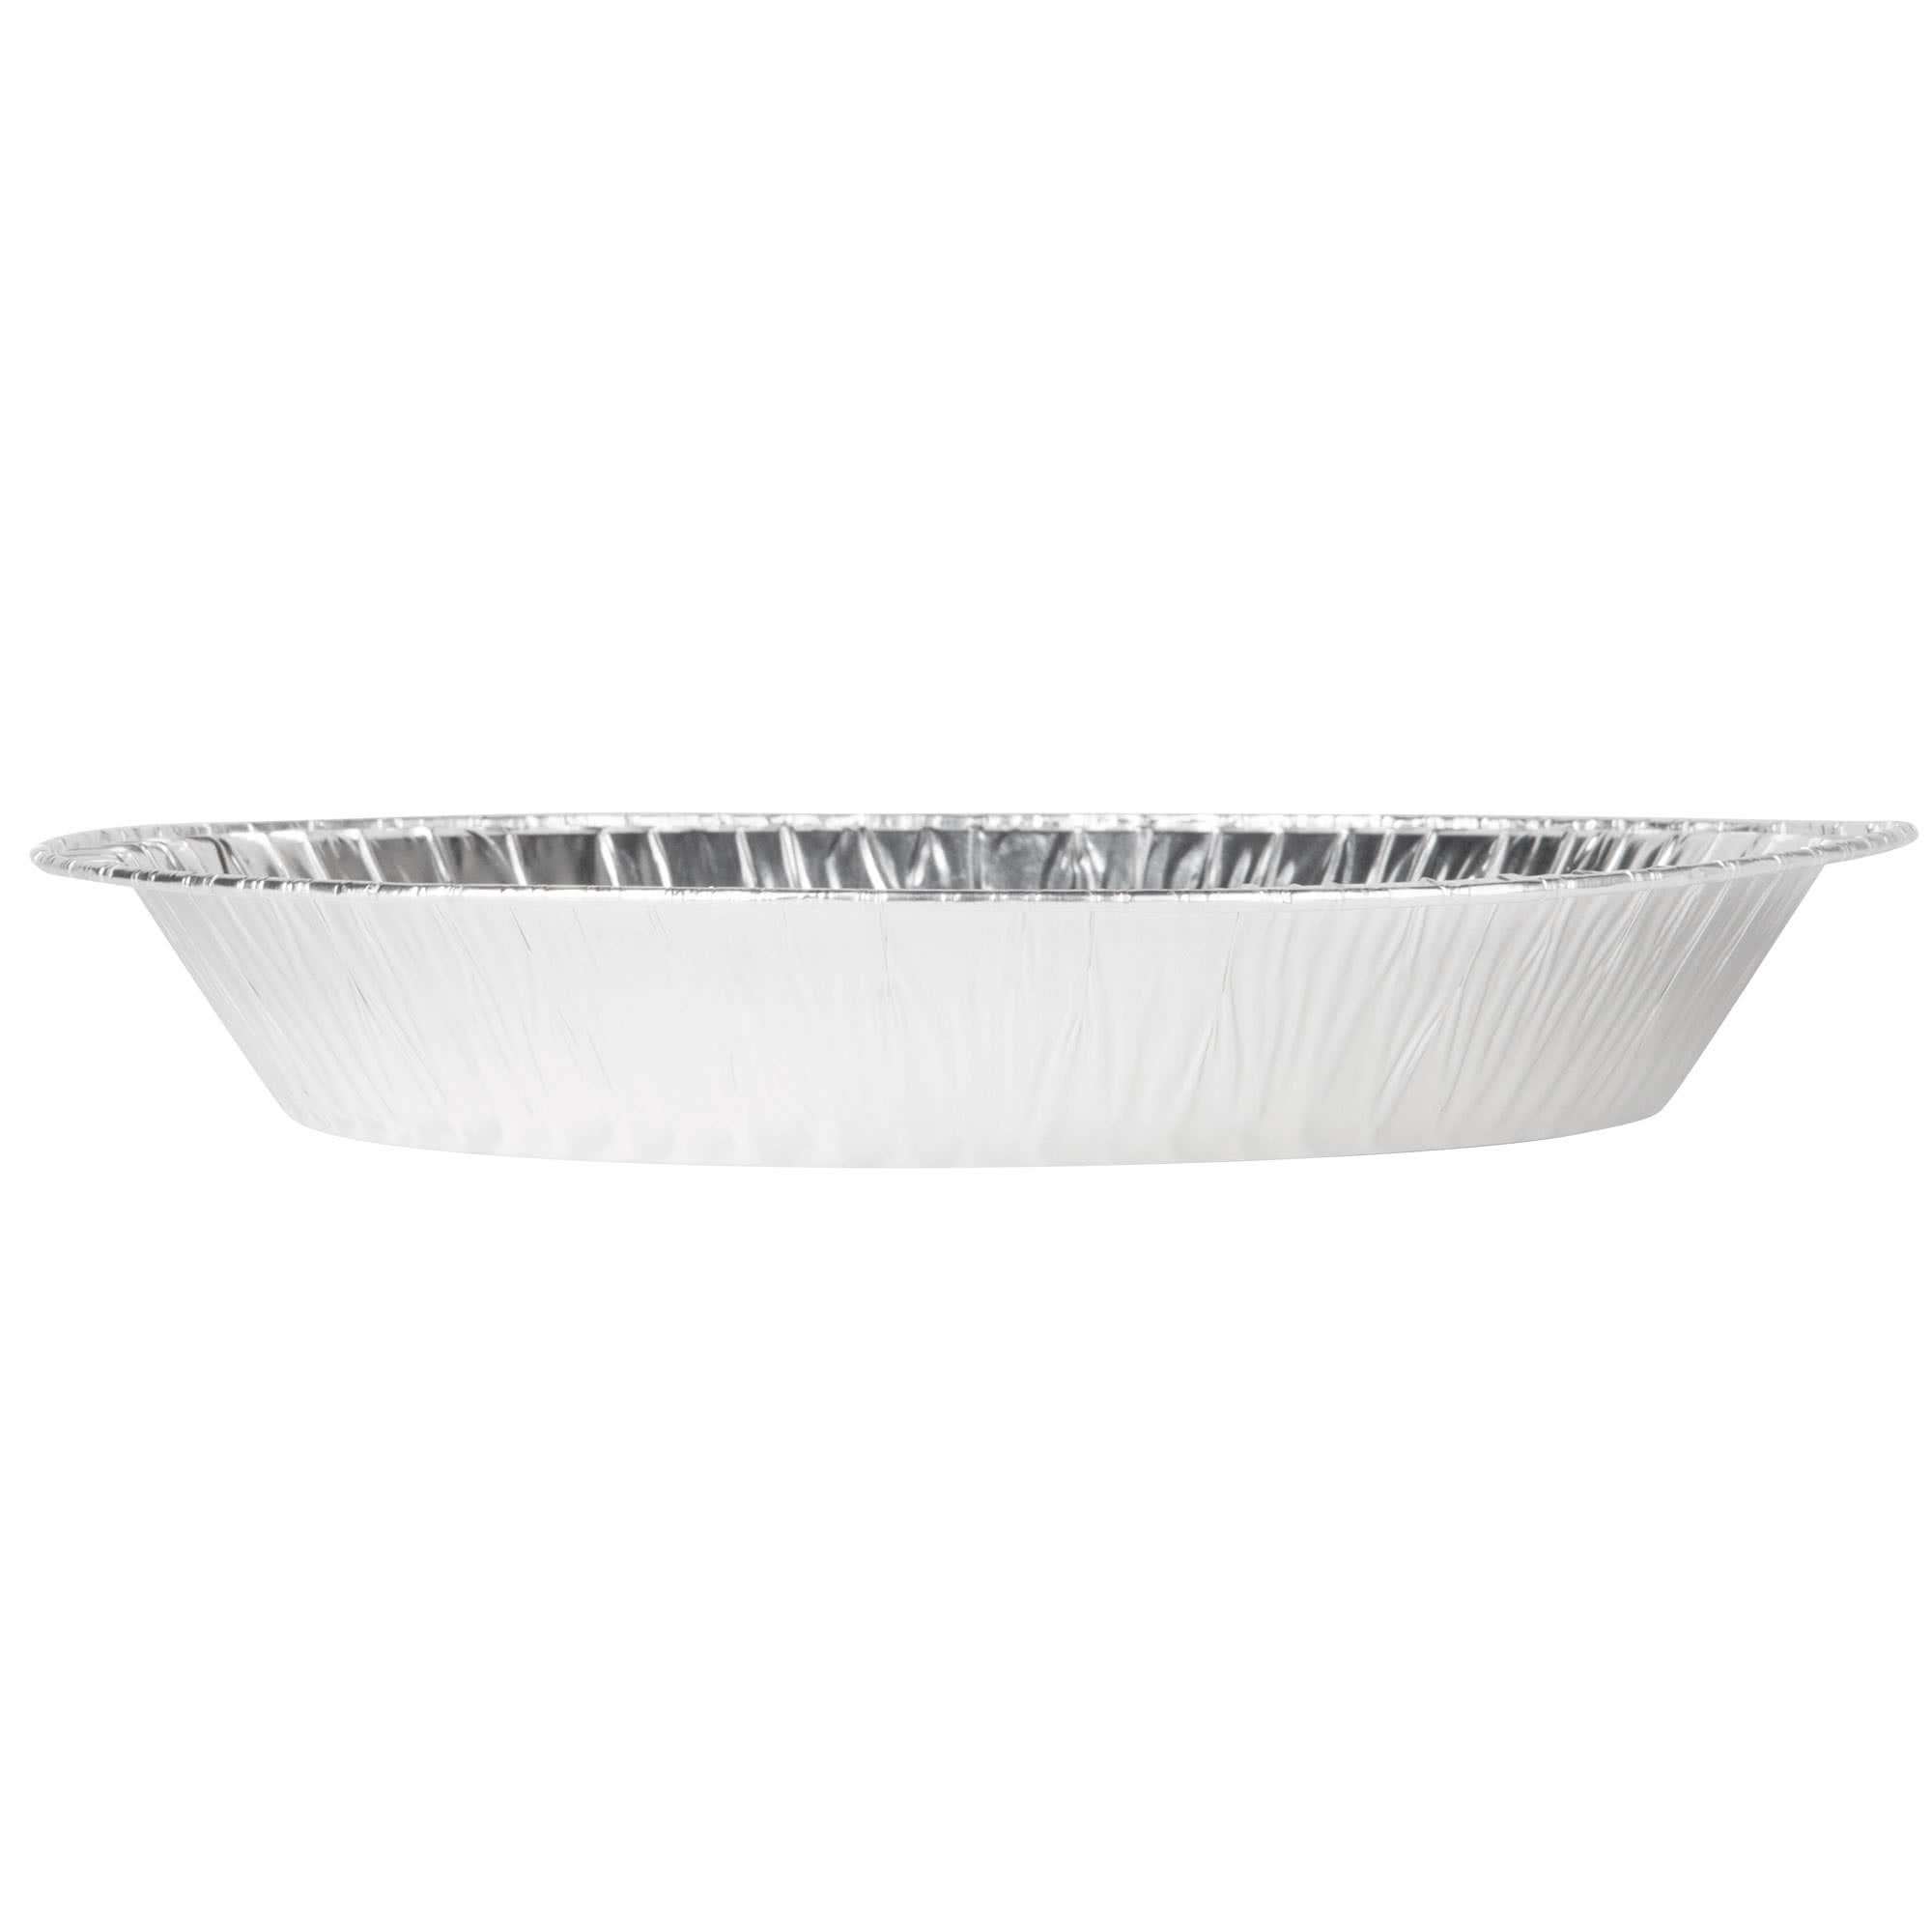 "9"" x 1 3 16"" Extra Deep Foil Pie Pan 500 Case By TableTop King by TableTop King"